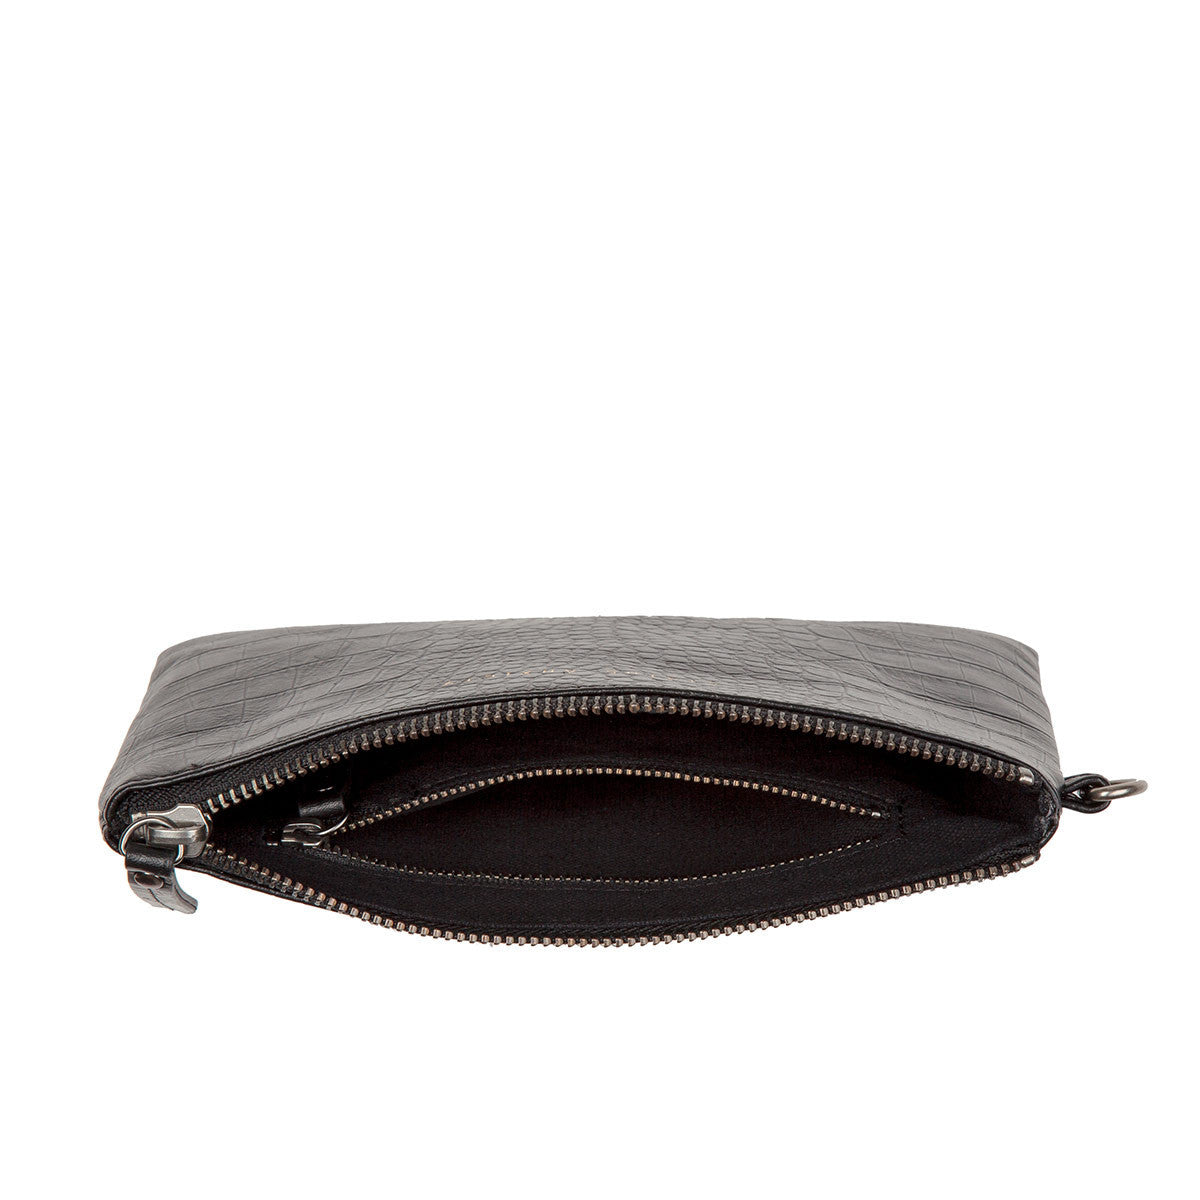 THE FIXATION BLACK CROC WALLET FROM STATUS ANXIETY 4